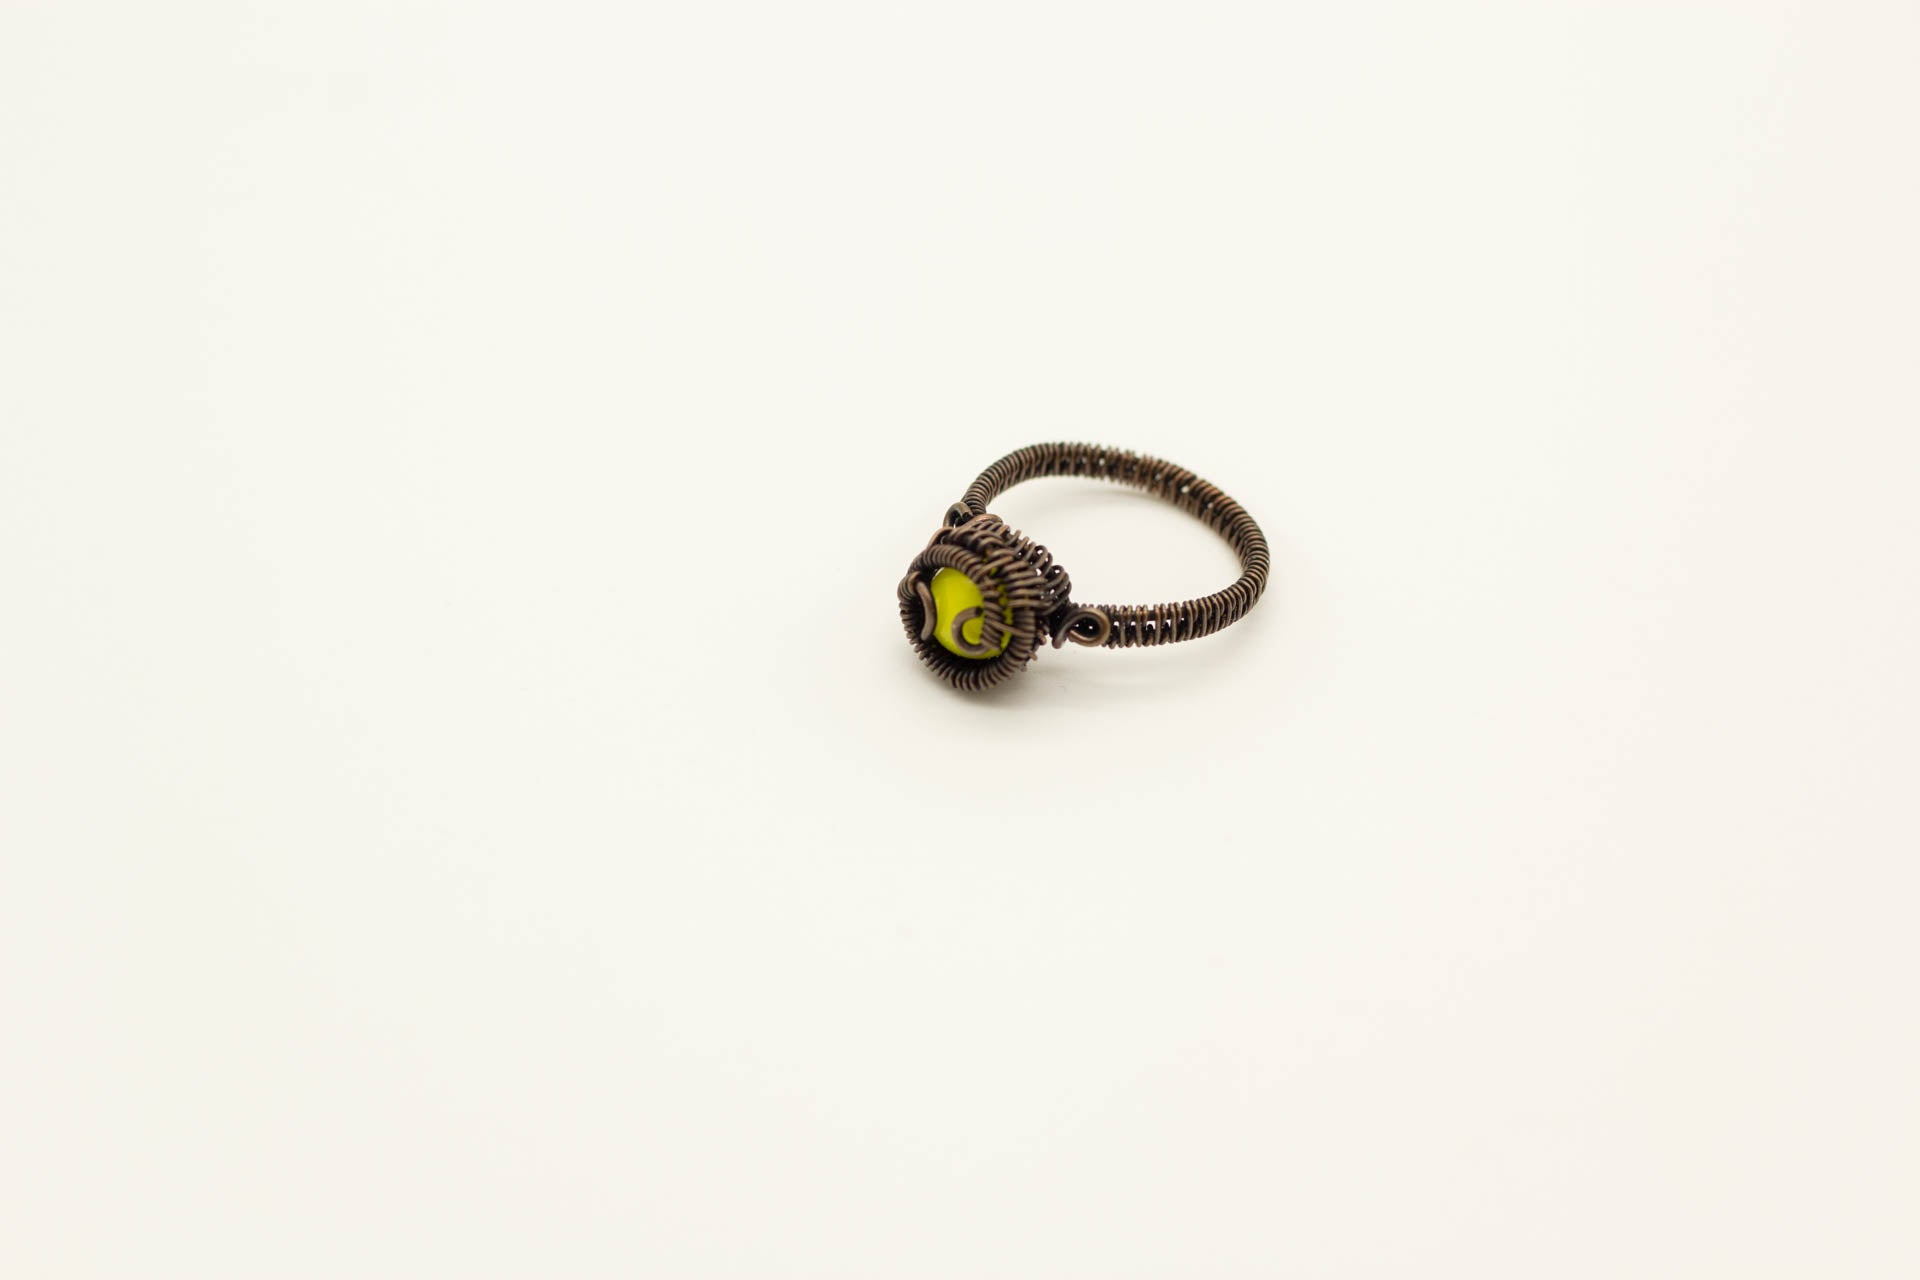 yellow-fused-glass-copper-wire-wrapped-ring-nymph-in-the-woods-jewelry